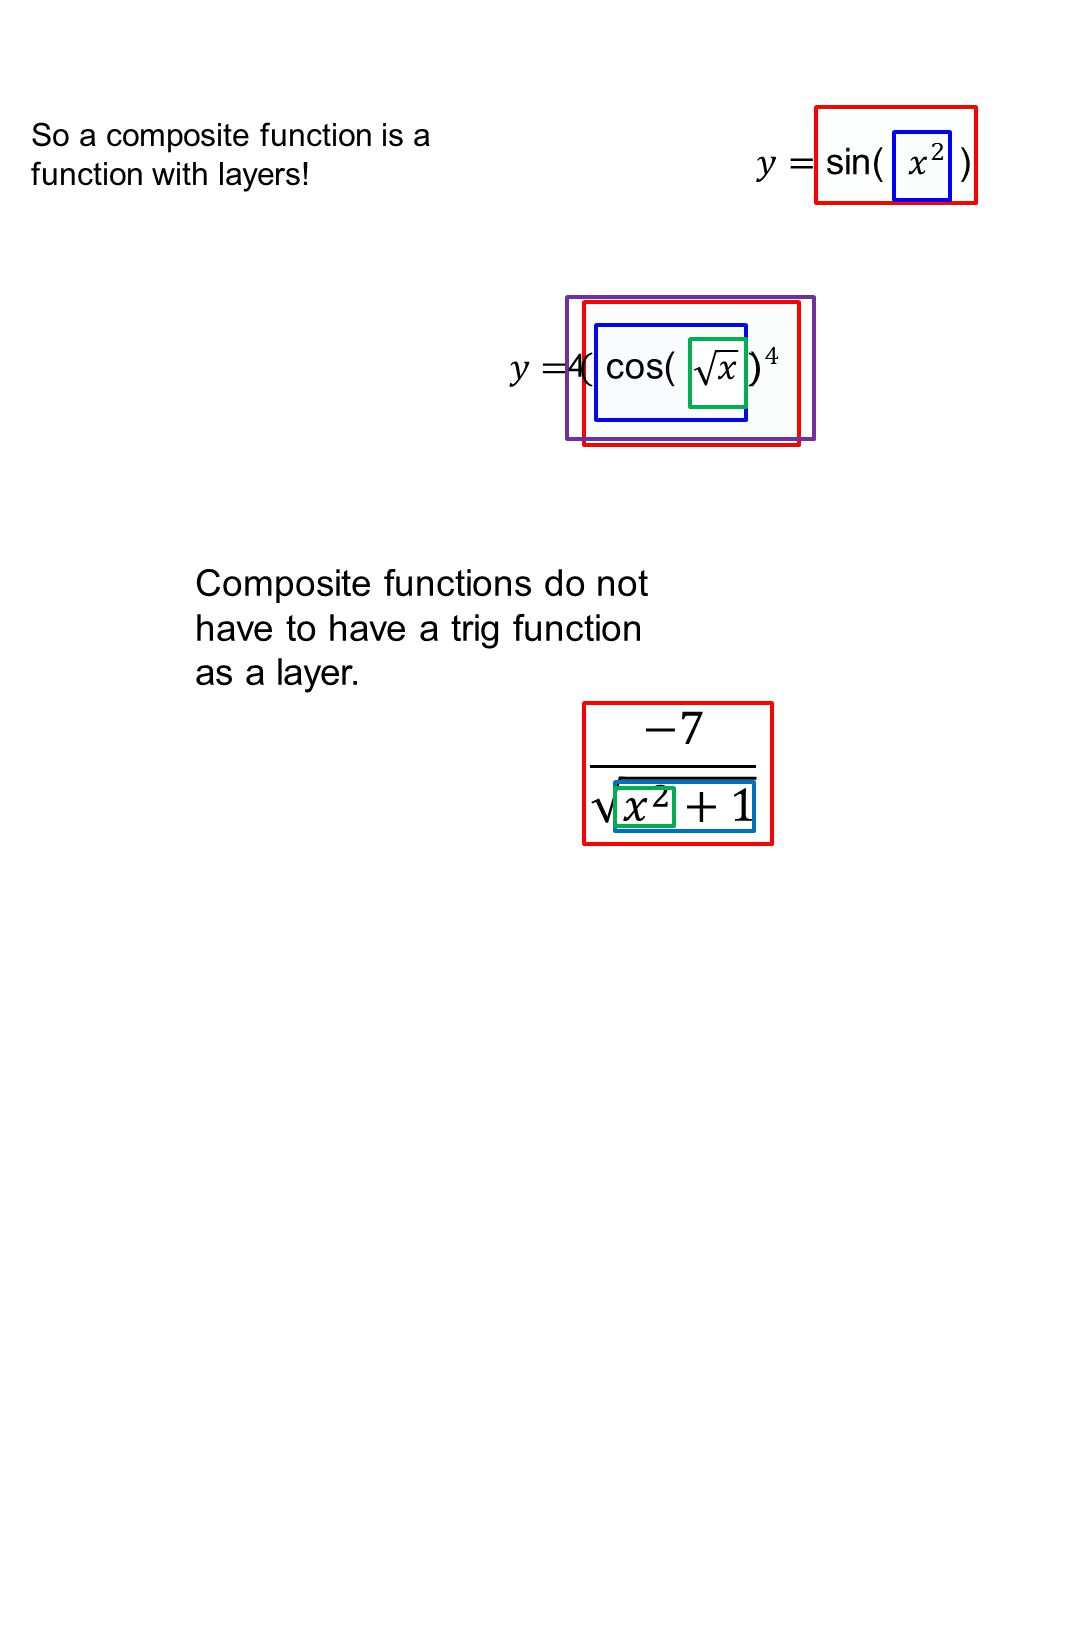 y = So a composite function is a function with layers.